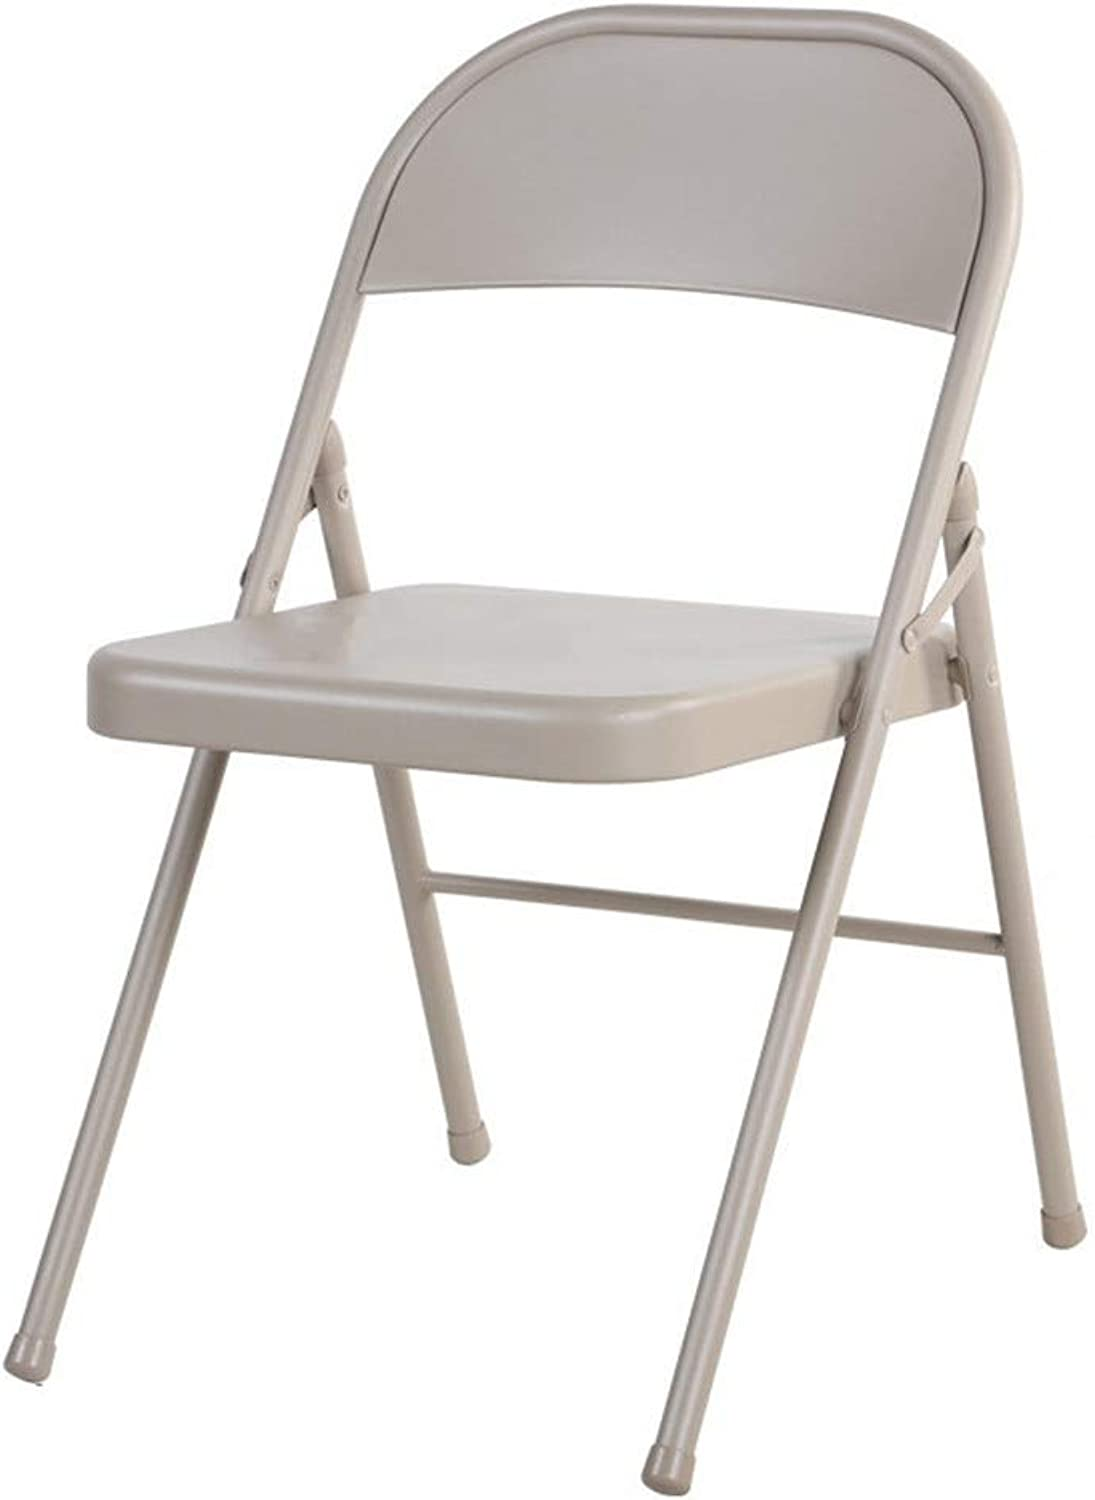 All Steel Folding Chair Multi Purpose Commercial Wedding Stack-able Plastic Series Curved Triple Braced Seat Double Hinged Vinyl Fabric Metal Chairs